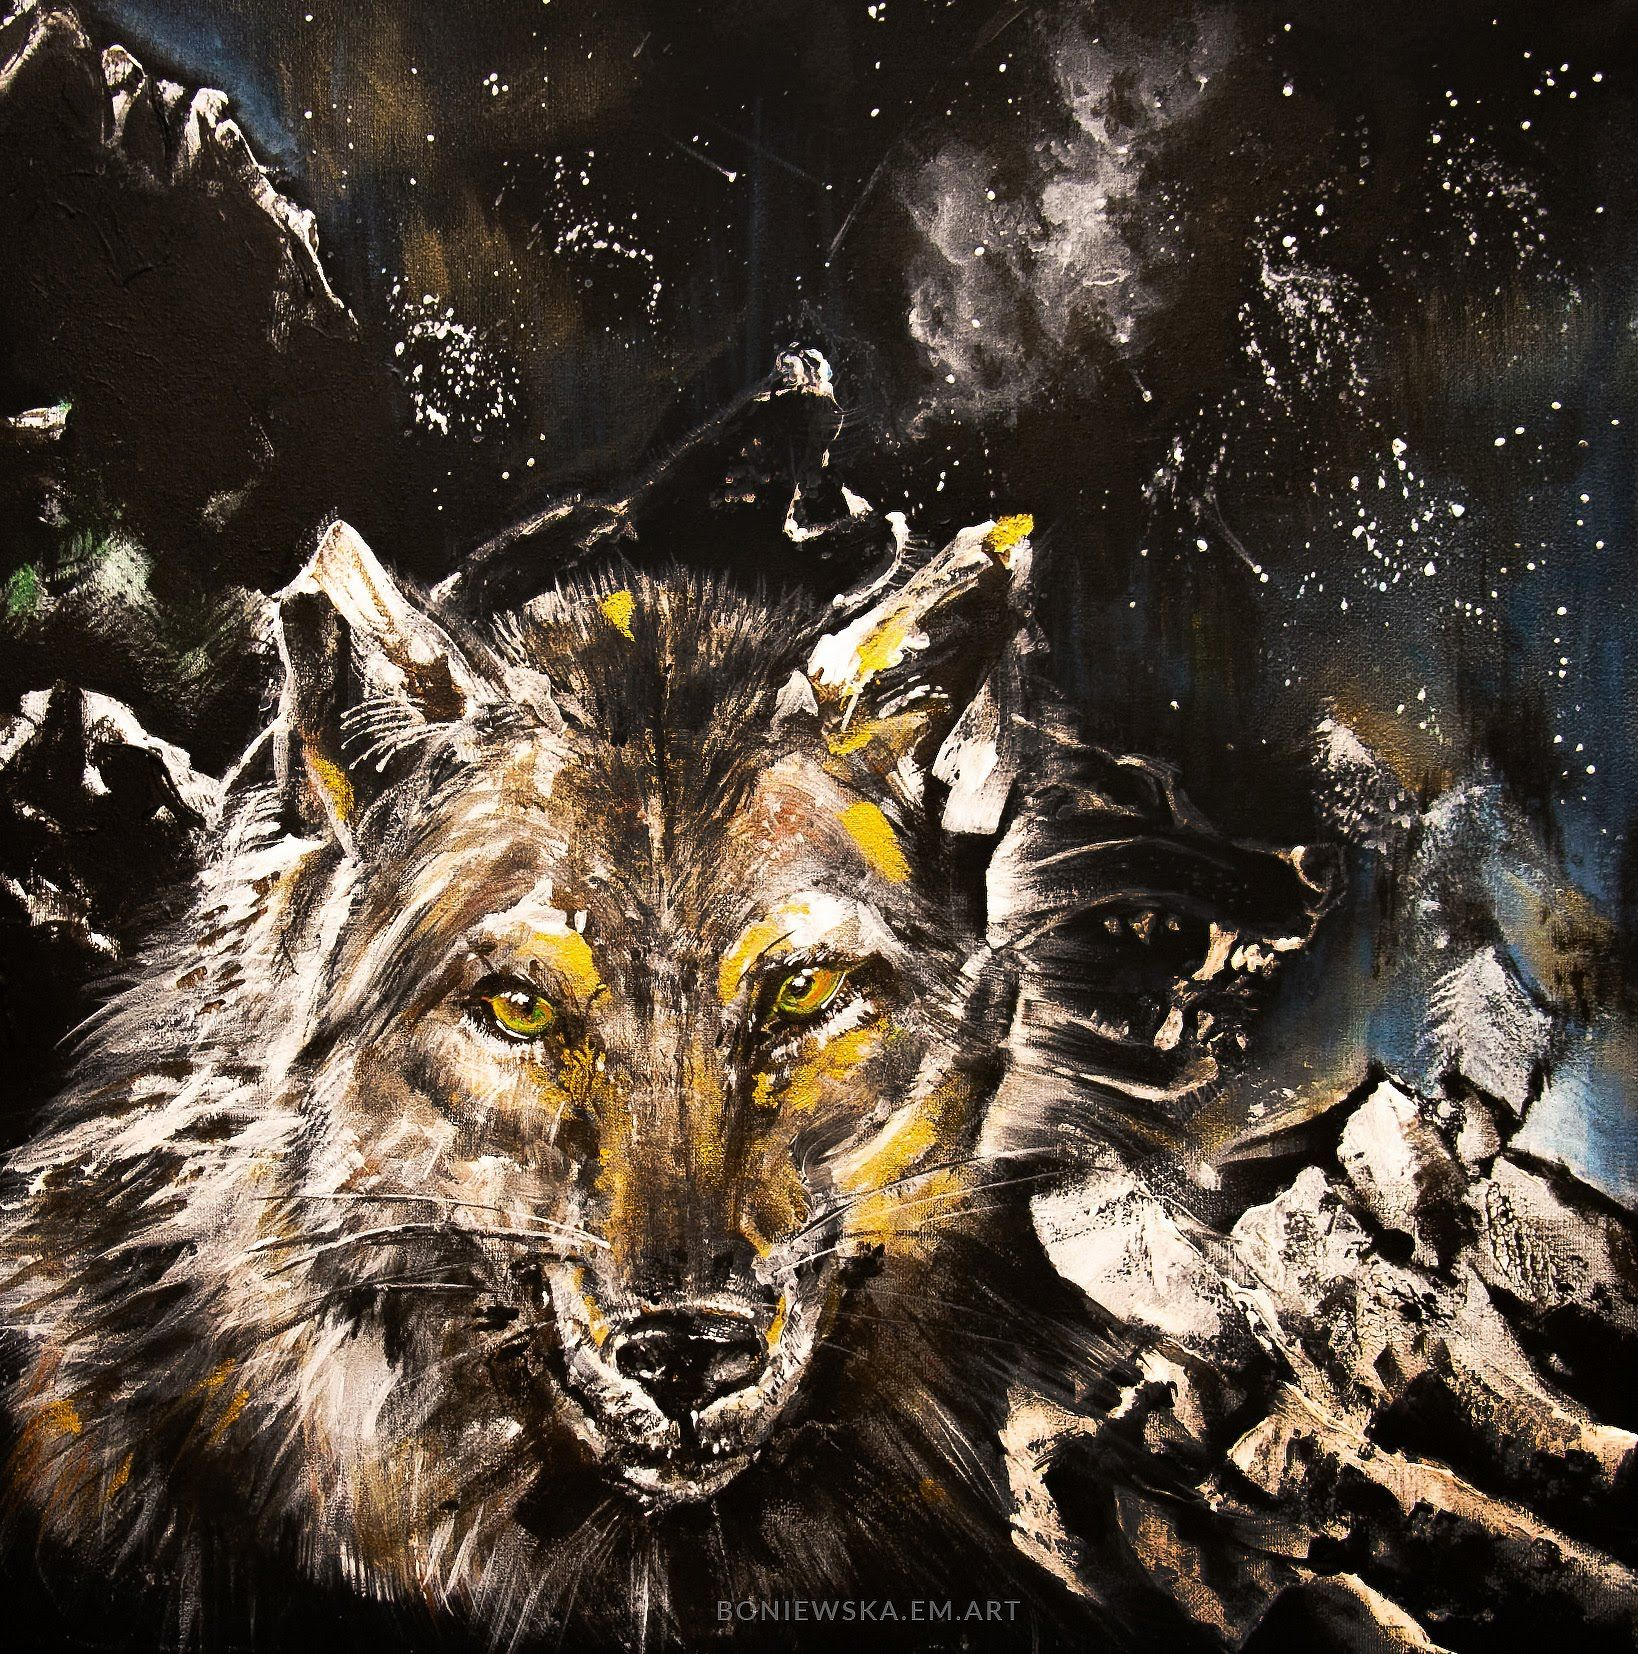 She Wolf painted